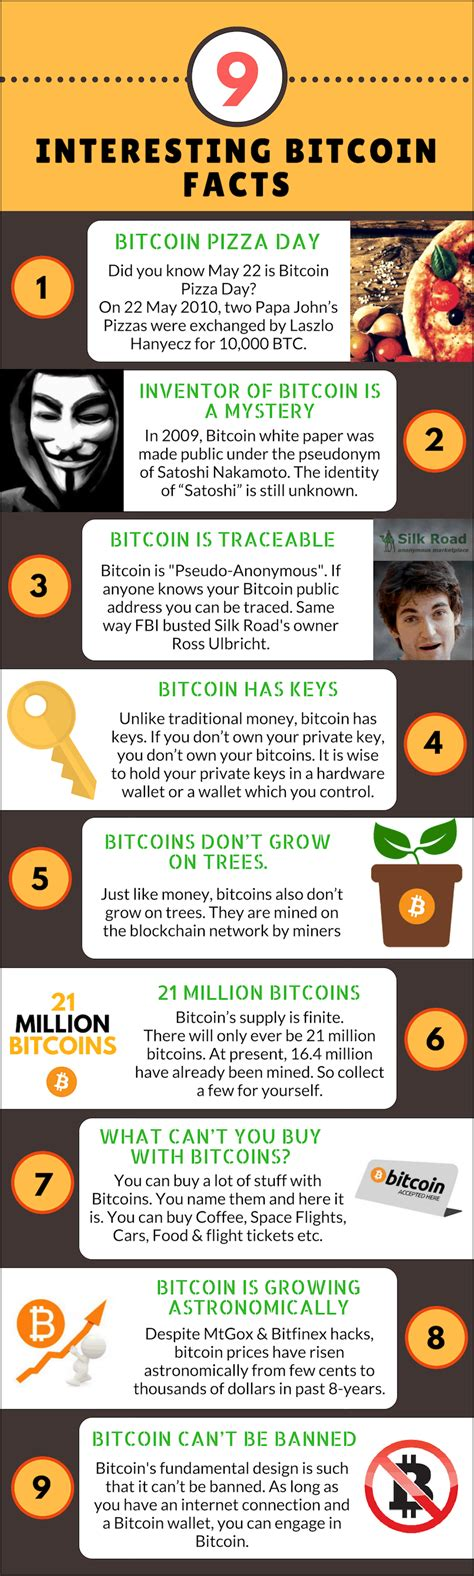 In 2010, during which bitcoin notably reached.30 cents per coin, users who wanted to buy bitcoins had to send money through paypal or western union, for instance, and hope they weren't defrauded. 9 Crazy Bitcoin Facts You Should Know In 2019 Infographic